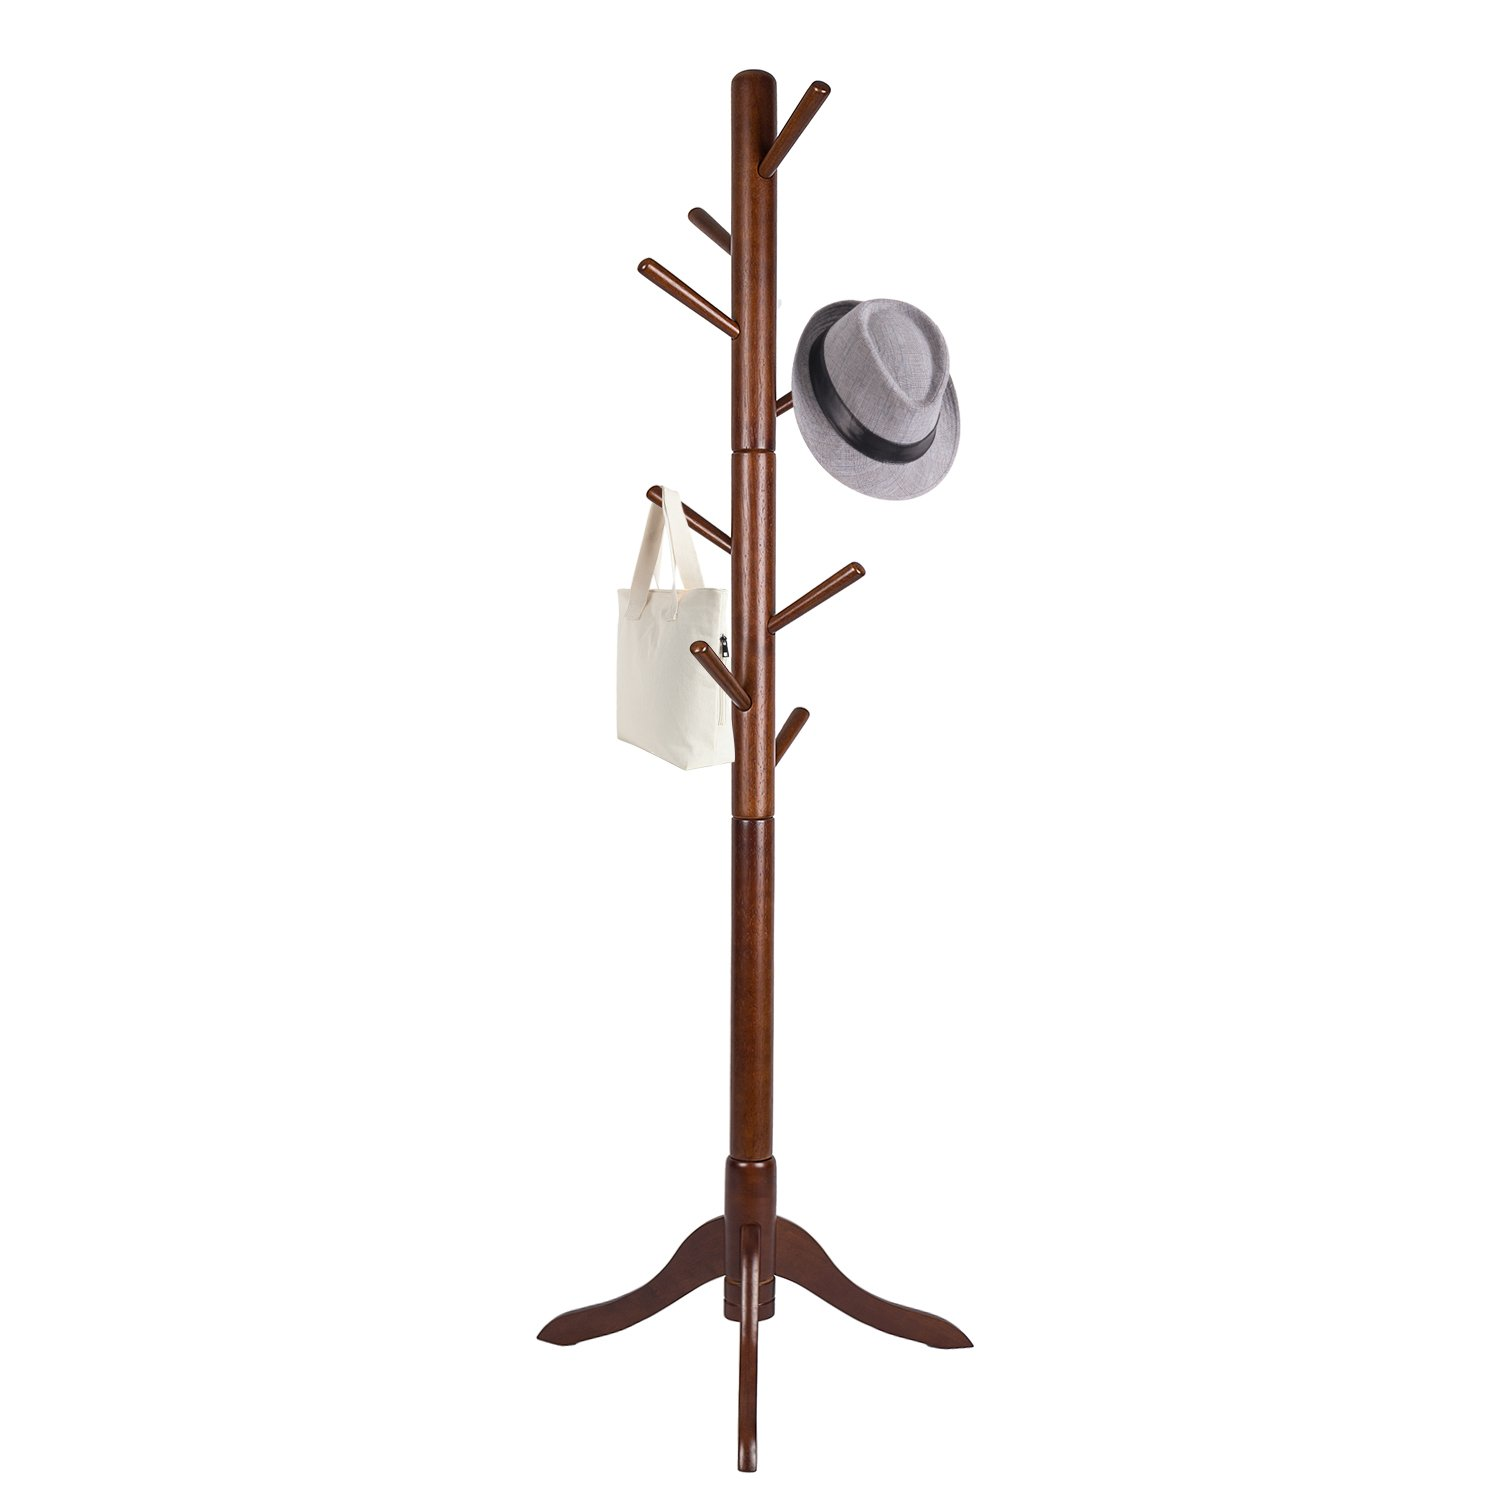 Vlush Free Standing Coat Rack, 8 Hooks Wooden Coat Hat Tree Coat Hanger Holder Enterway Hall Tree with Solid Rubber Wood Base for Coat, Hat, Clothes, Scarves, Handbags, Umbrella-Coffee